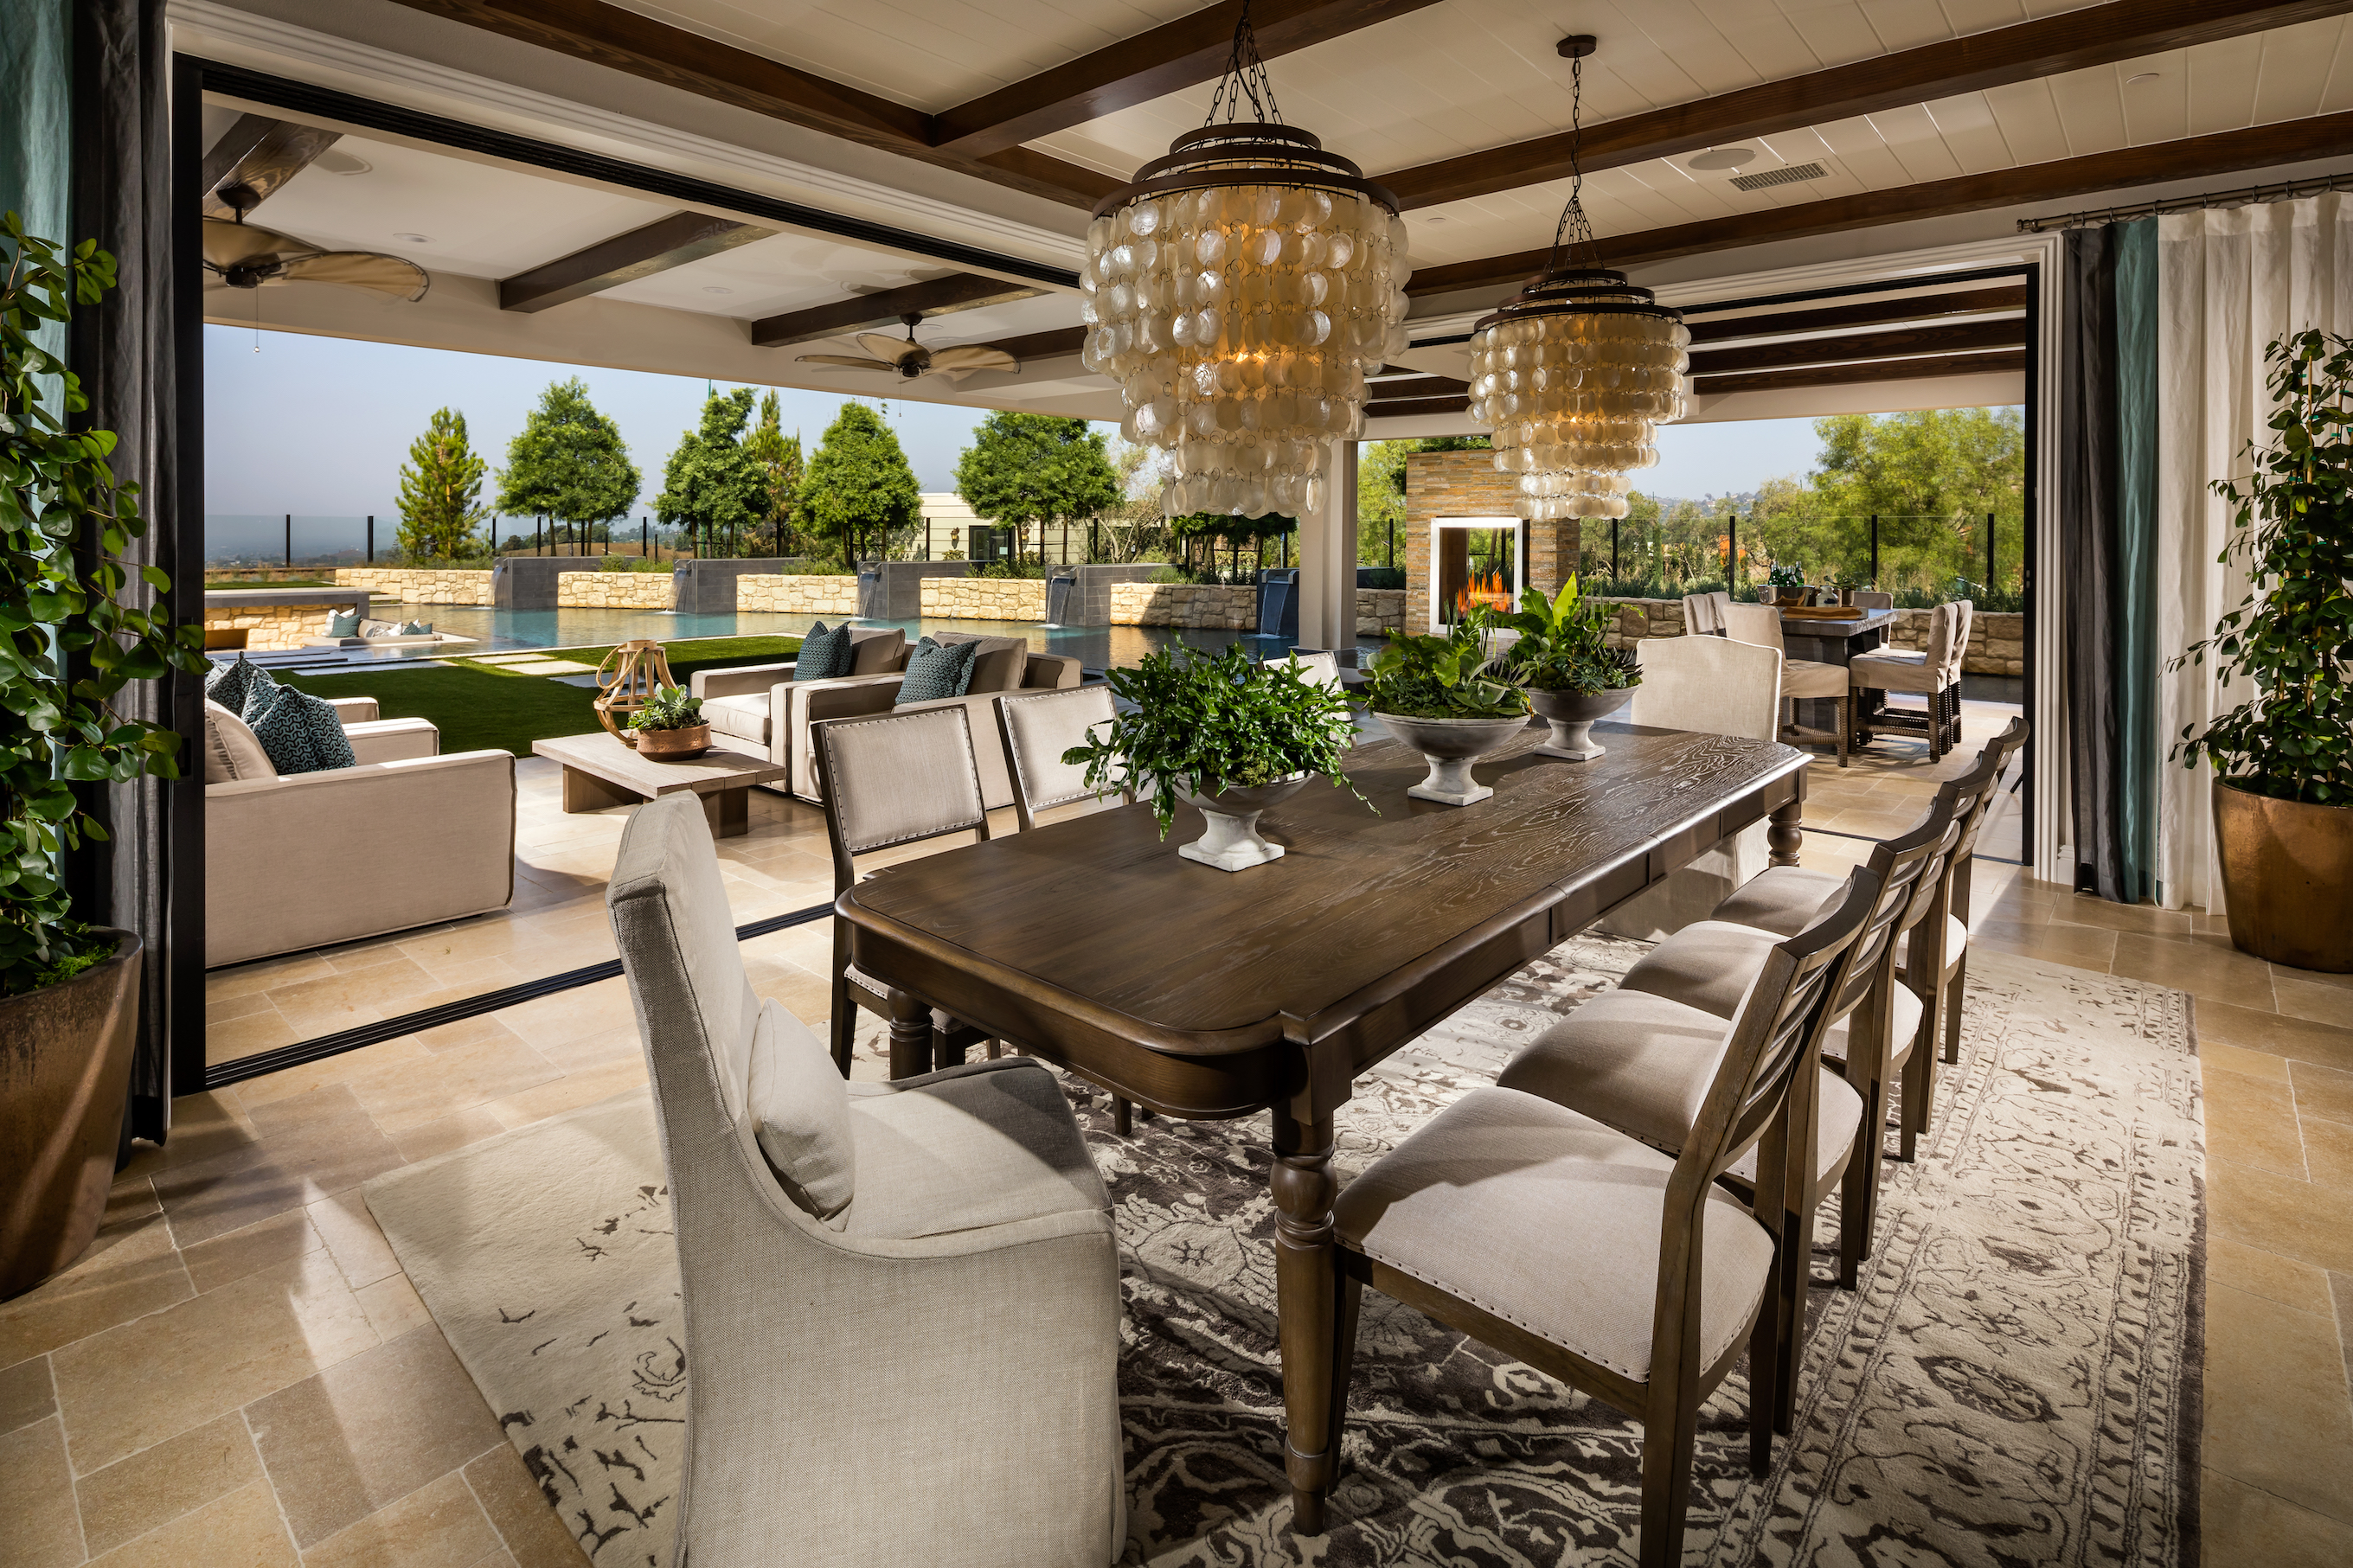 Toll Brothers Honored with 11 Awards at The Nationals ... on home garden design, home greenhouse design, home orchard fruit tree, home orchard irrigation system, home orchard plan, home winery design, home fruit orchard layout, home aquaponics design, home virginia design,